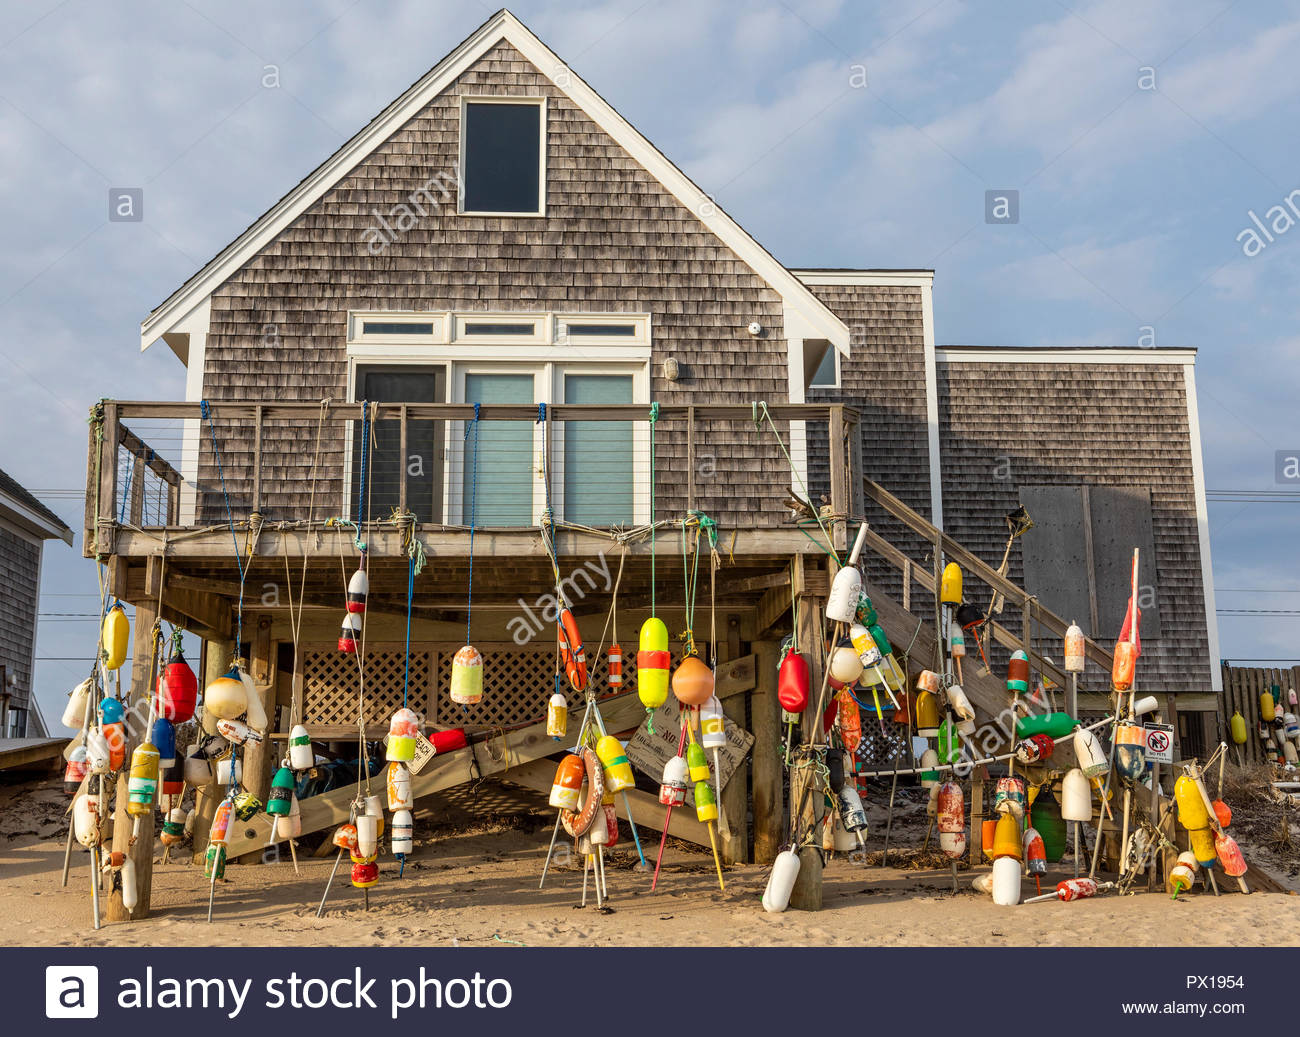 A house with colorful foam fishing buoys decorating the exterior. - Stock Image